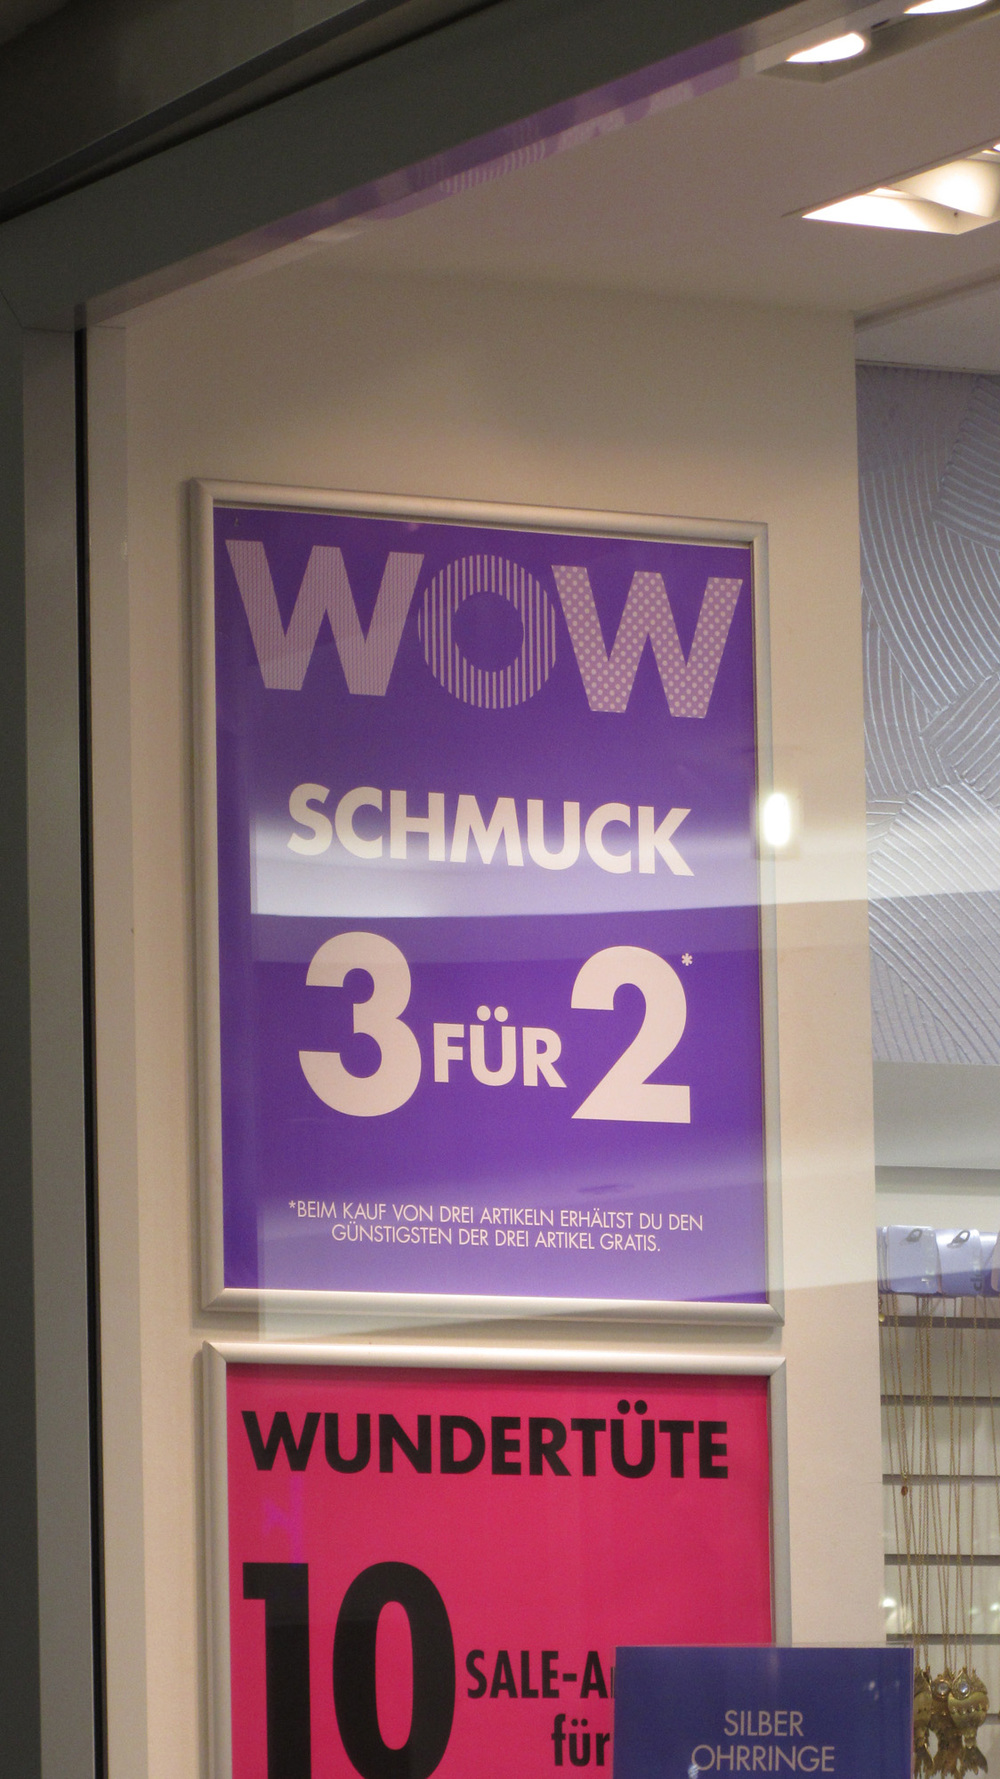 I thought schmuck was funny and then I saw 'Wondertute' which is even better!